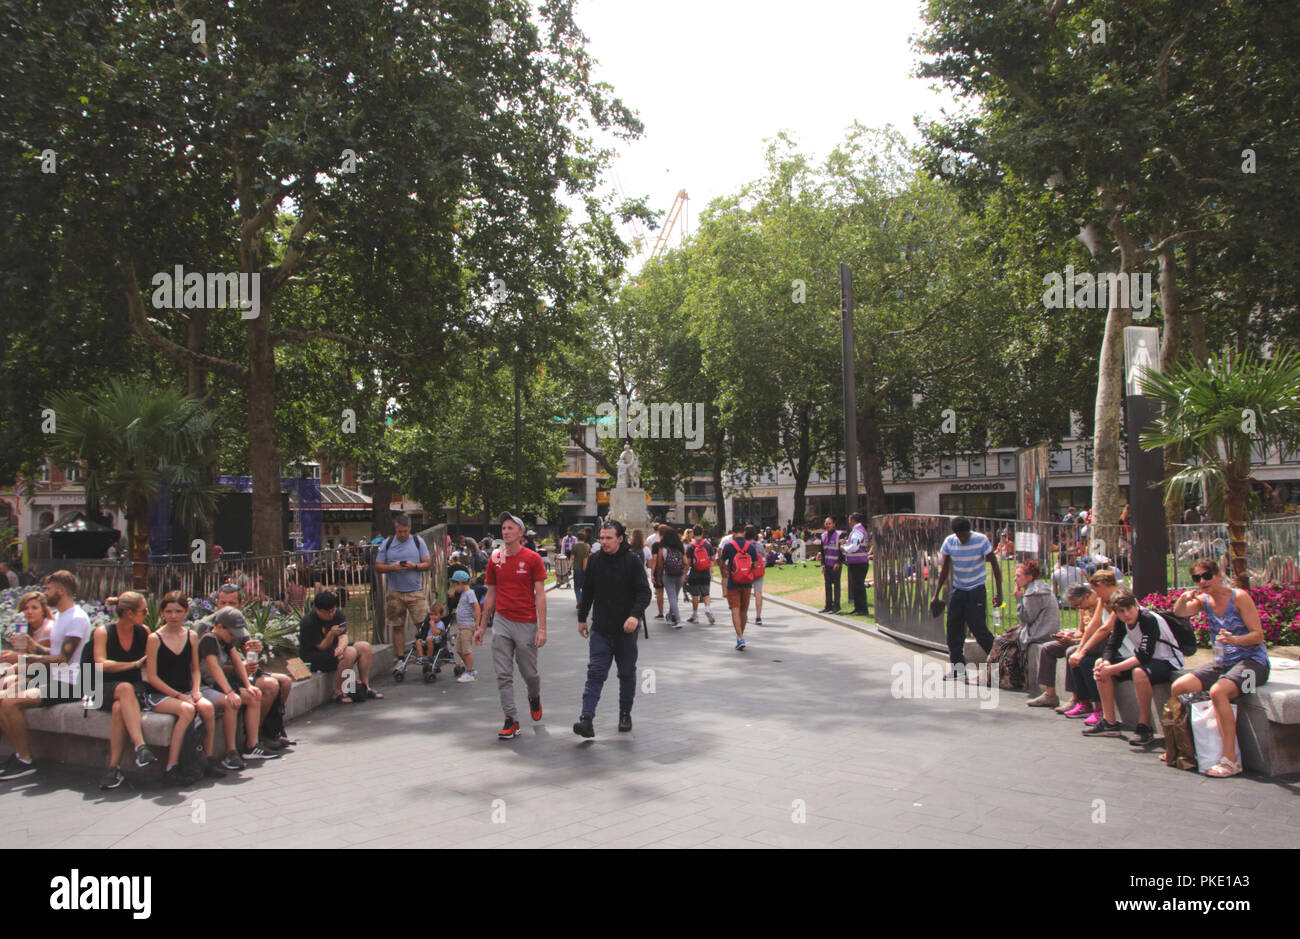 Leicester Square Gardens London summer 2018 Stock Photo